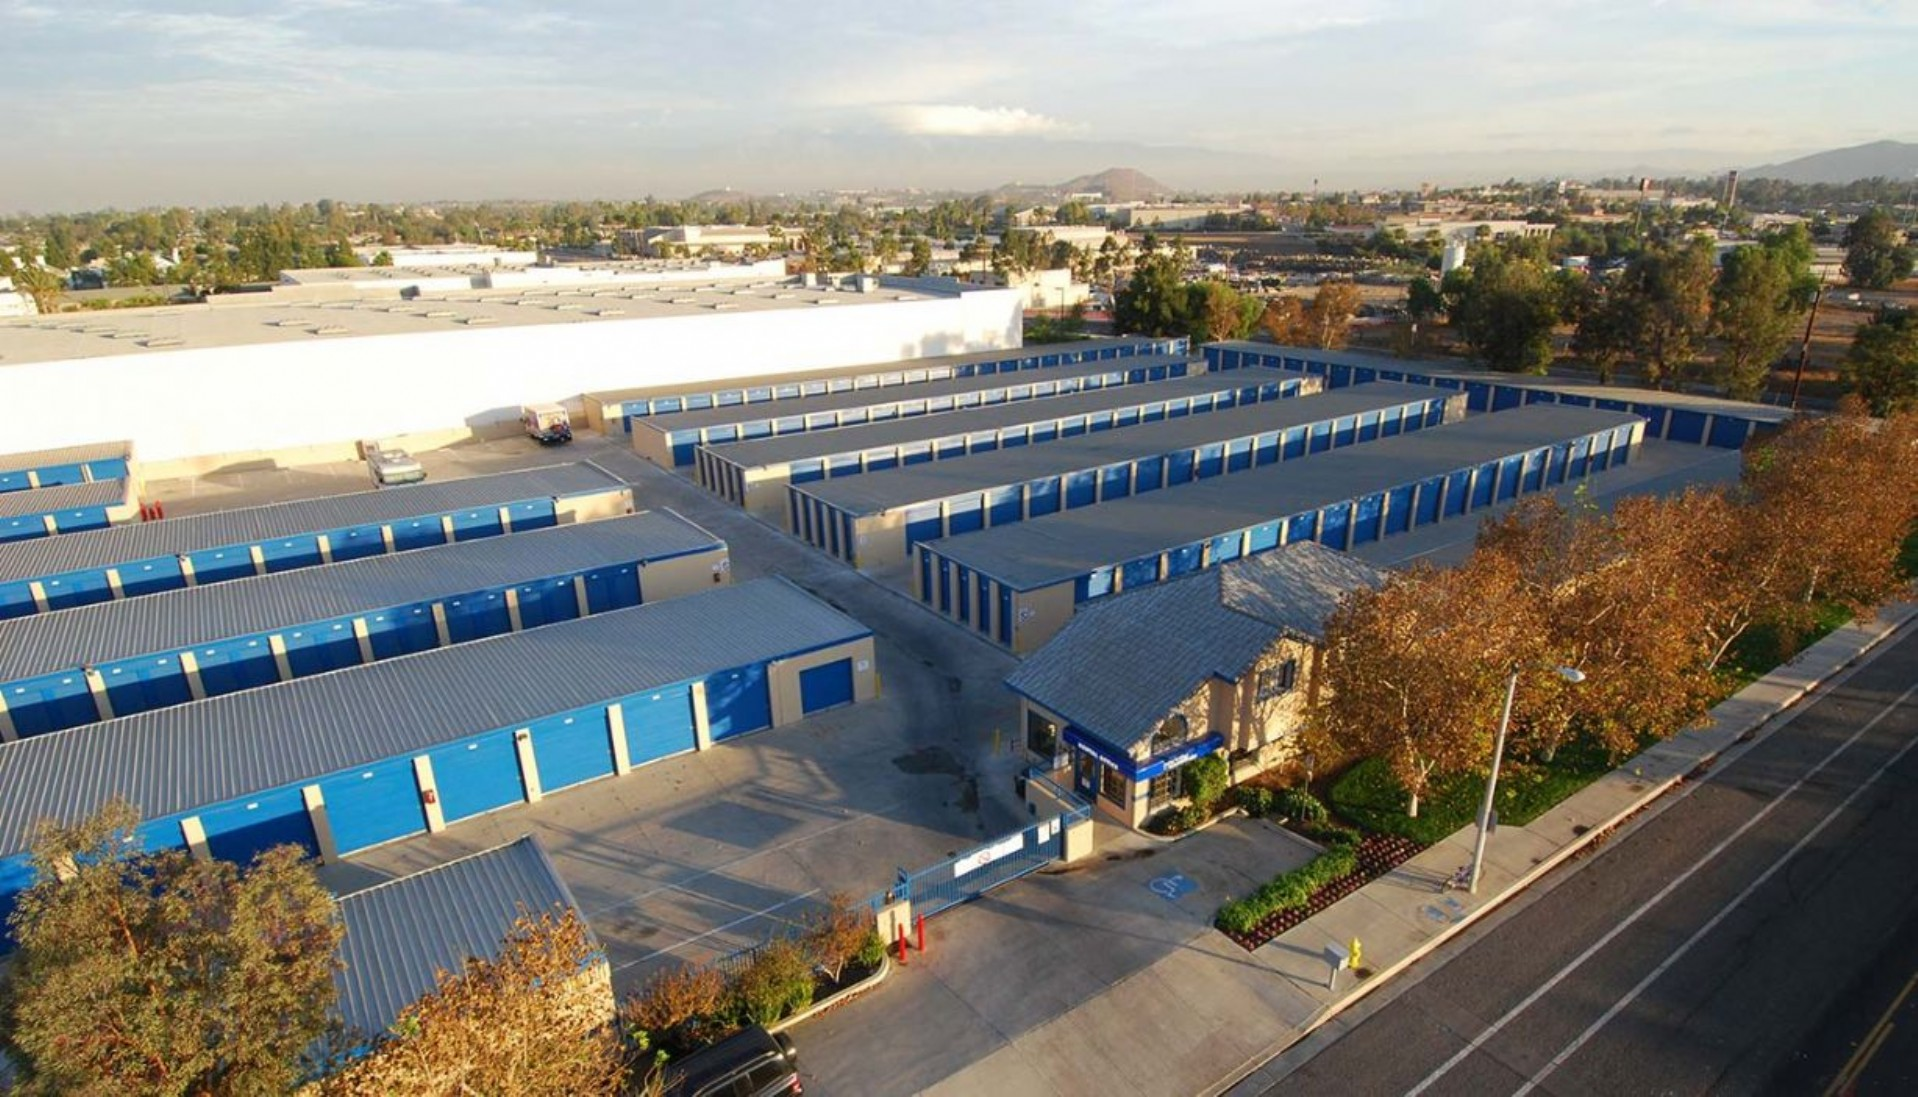 Price Self Storage Norco aerial view of the facility